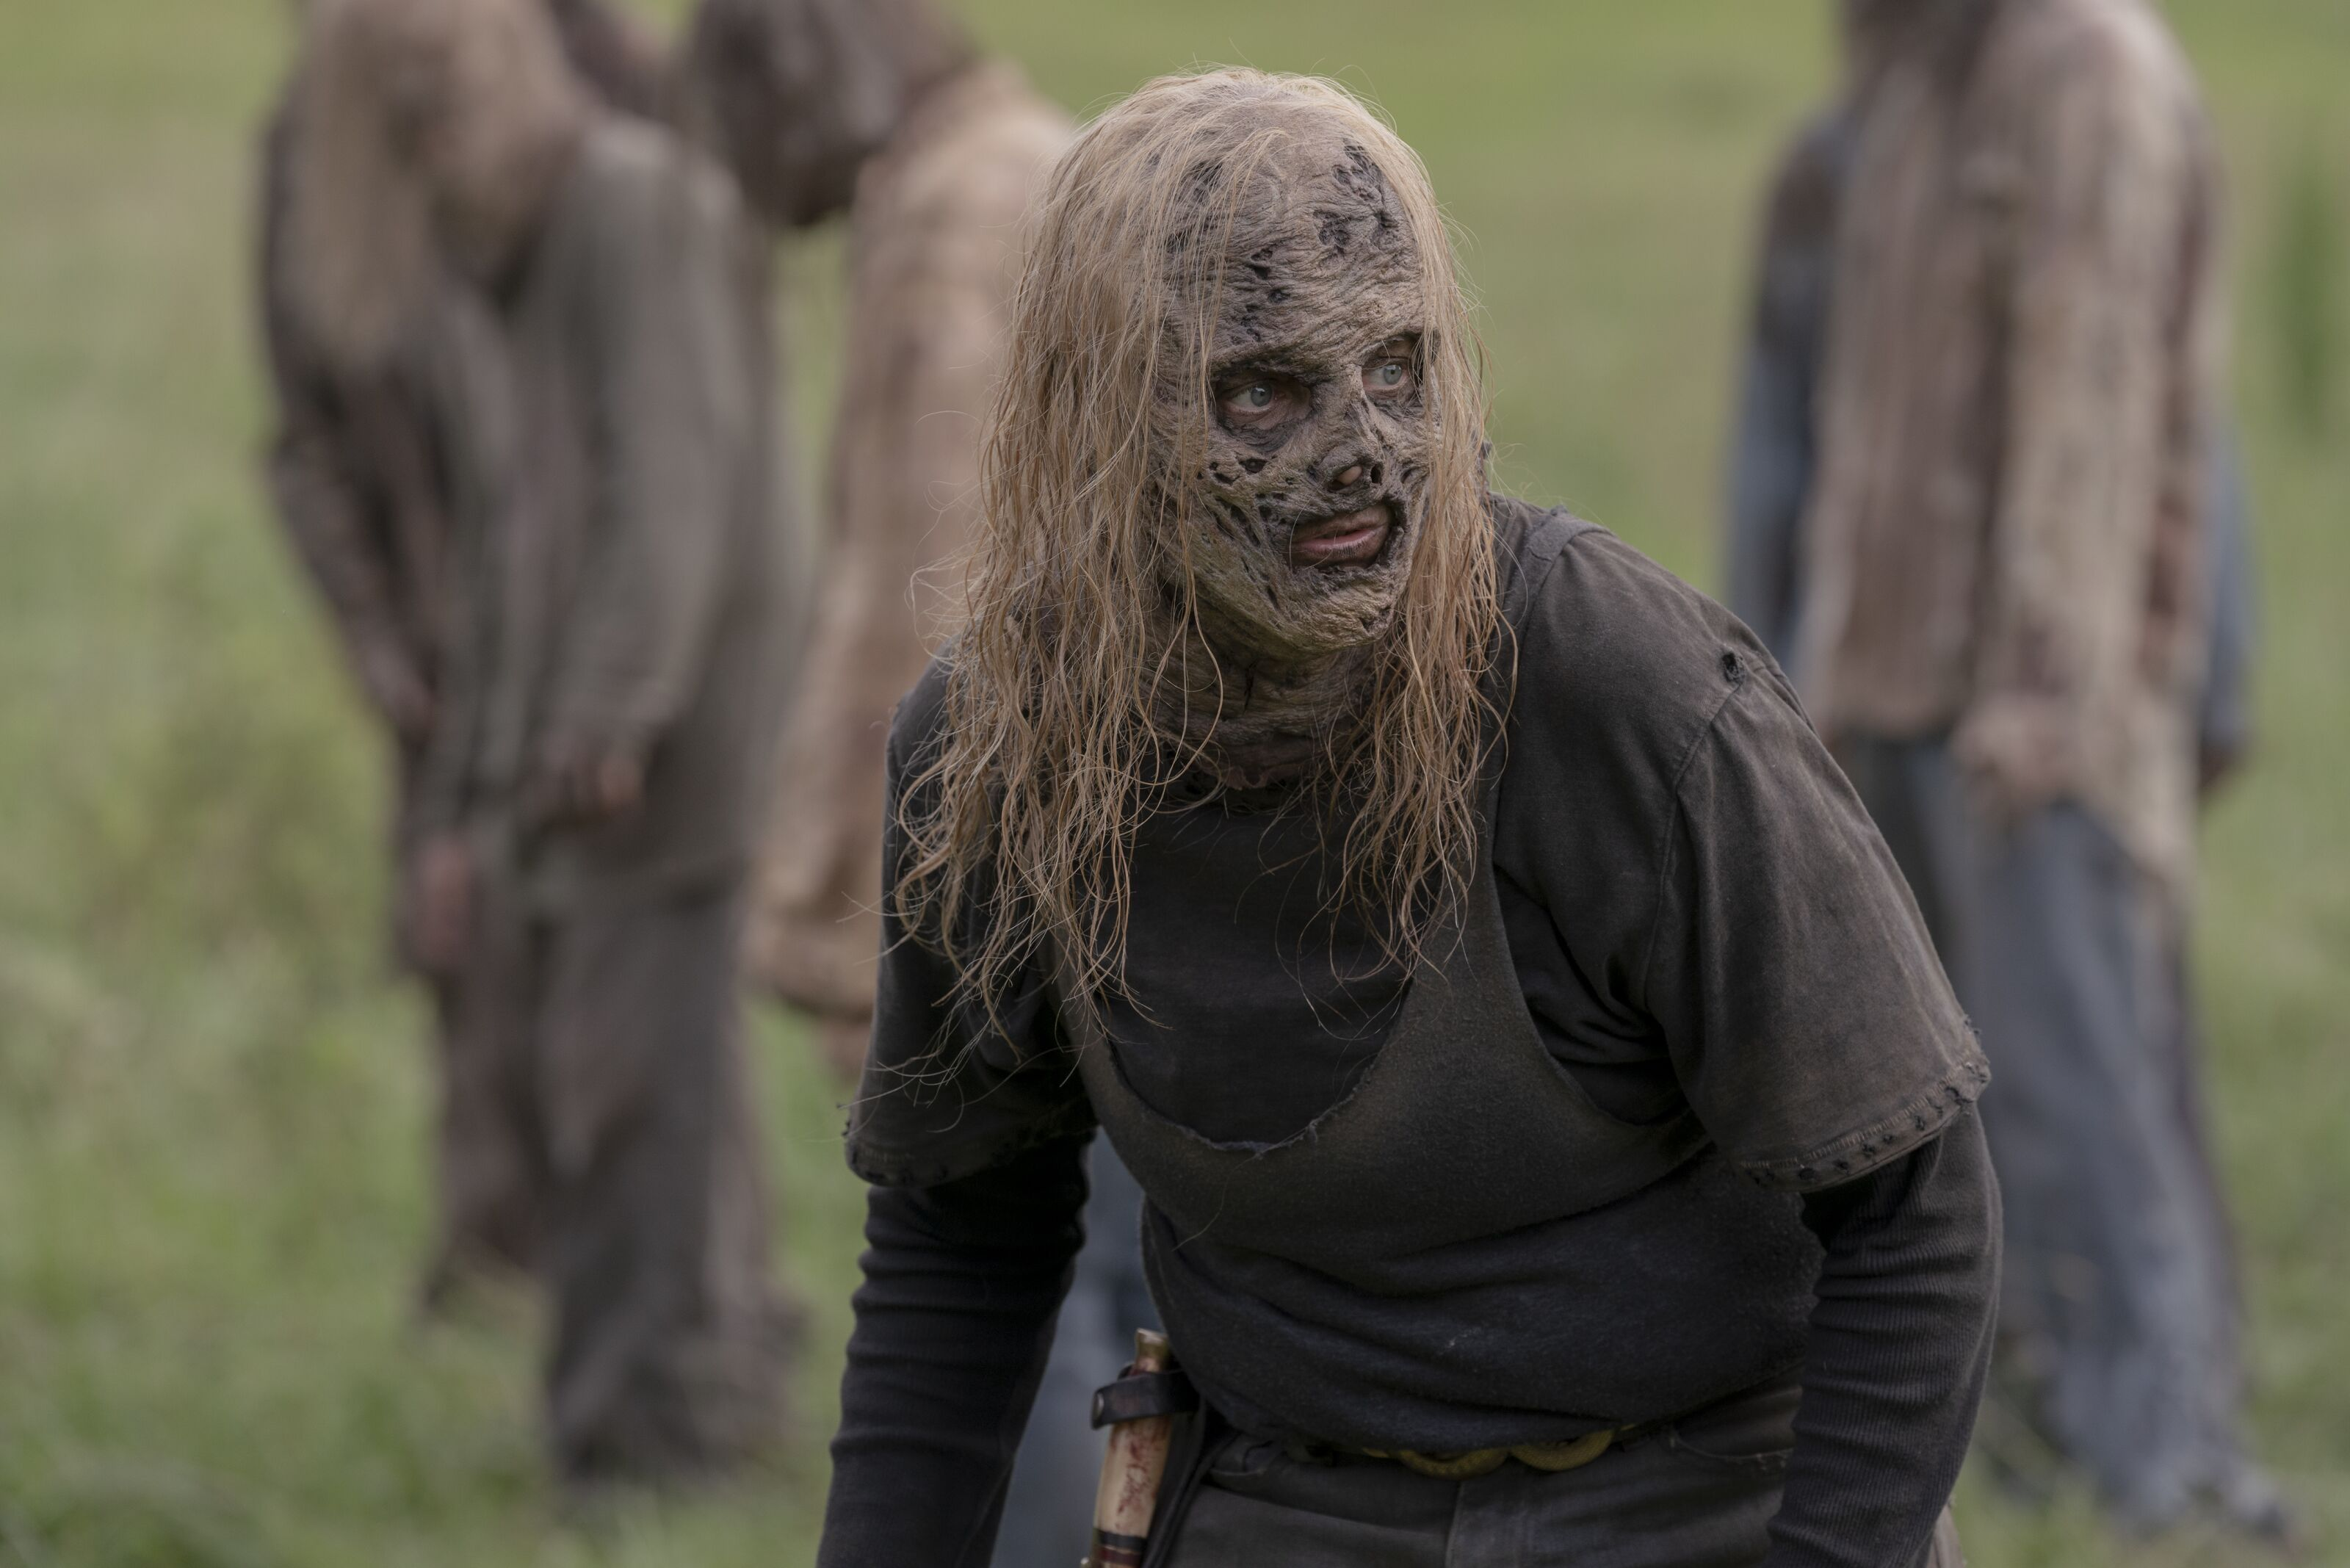 The Walking Dead, Survival Rule Of The Week: Become adaptable